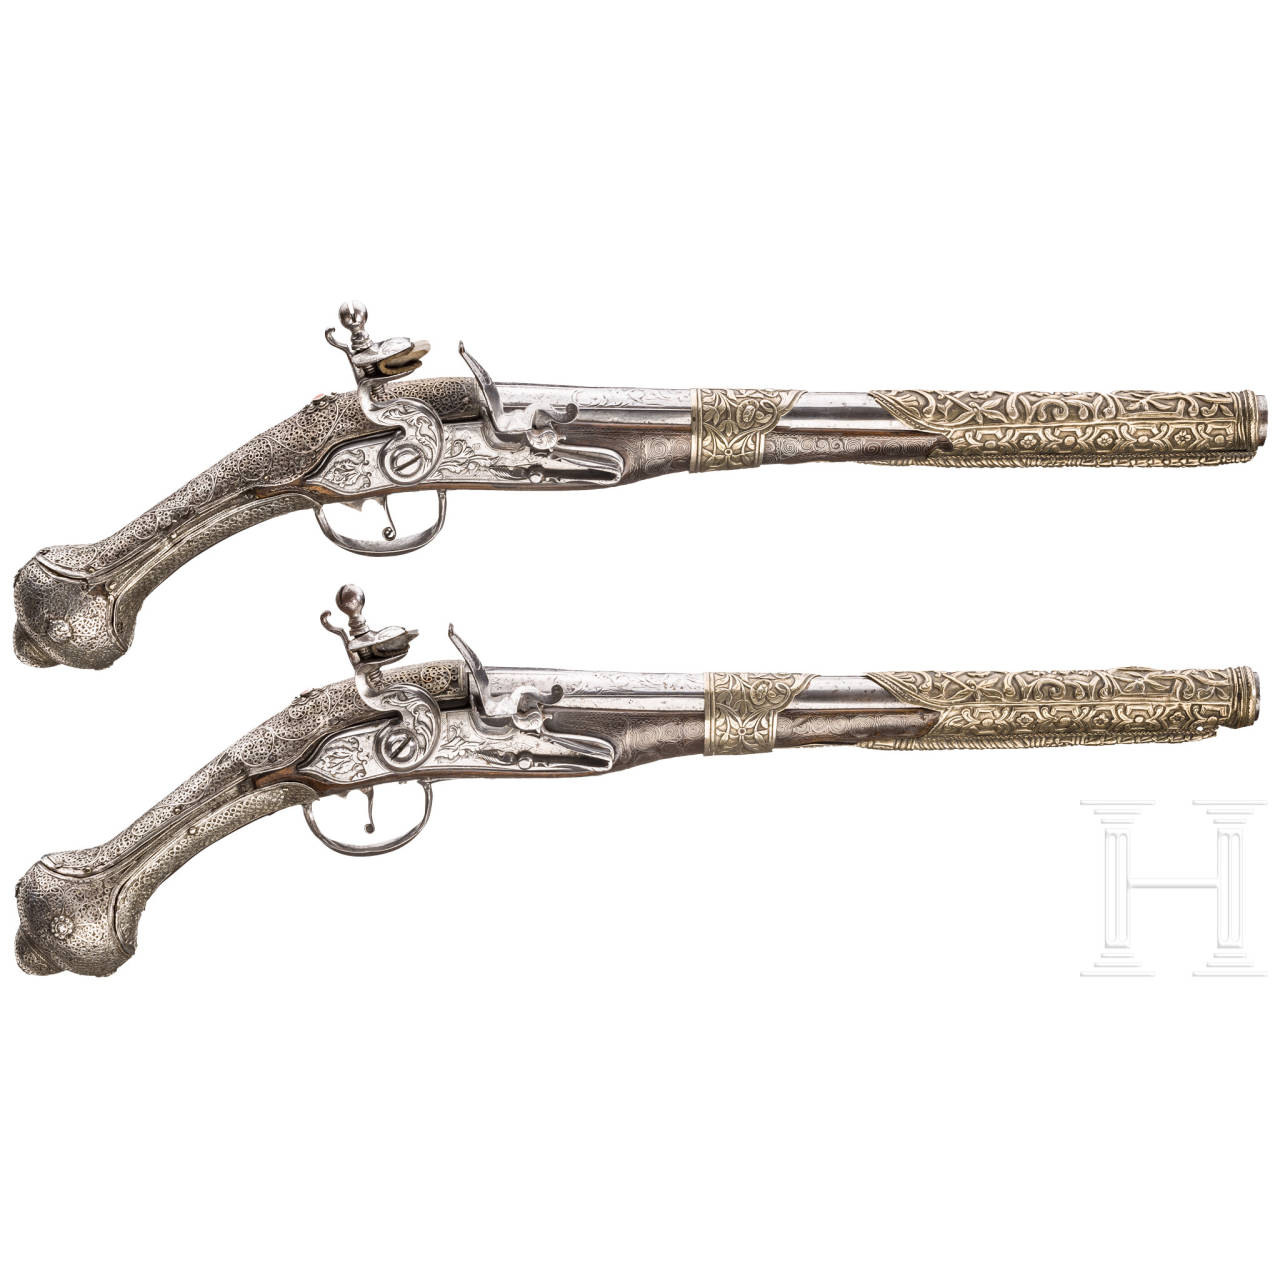 A pair of Balkan-Turkish flintlock pistols, embellished with silver filigree, dated 1802